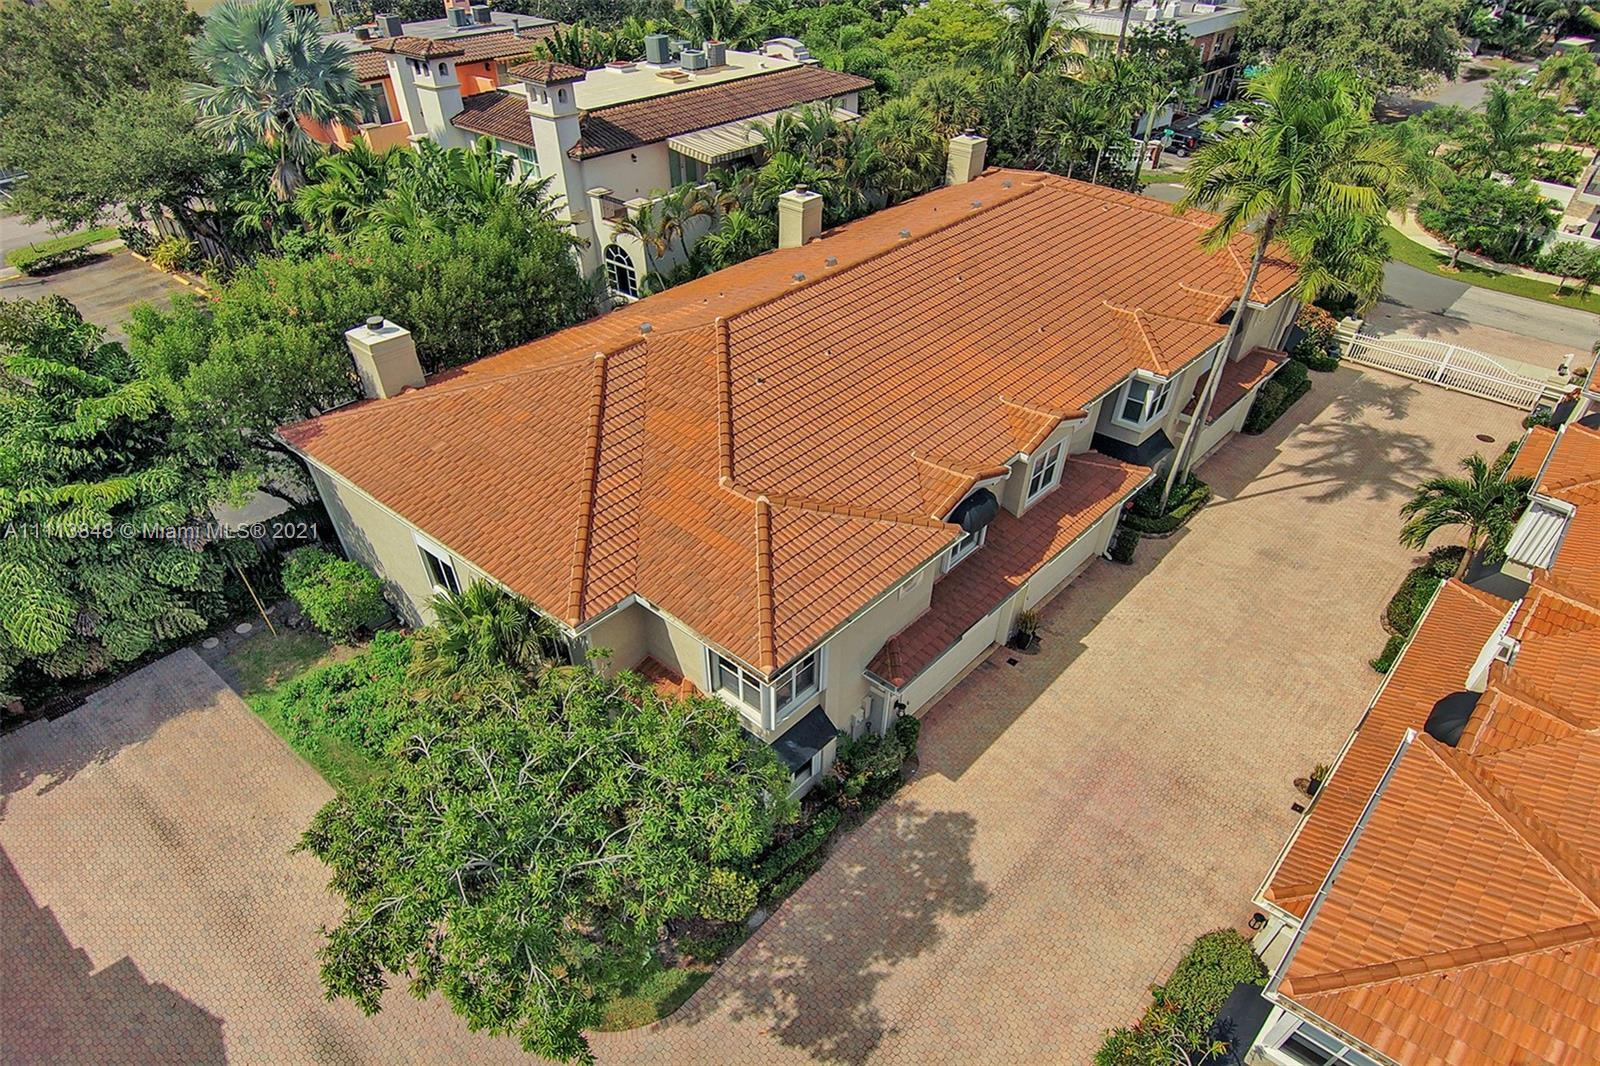 Location, Location, Location!! Walk to Las Olas and Downtown Fort Lauderdale... only minutes from be